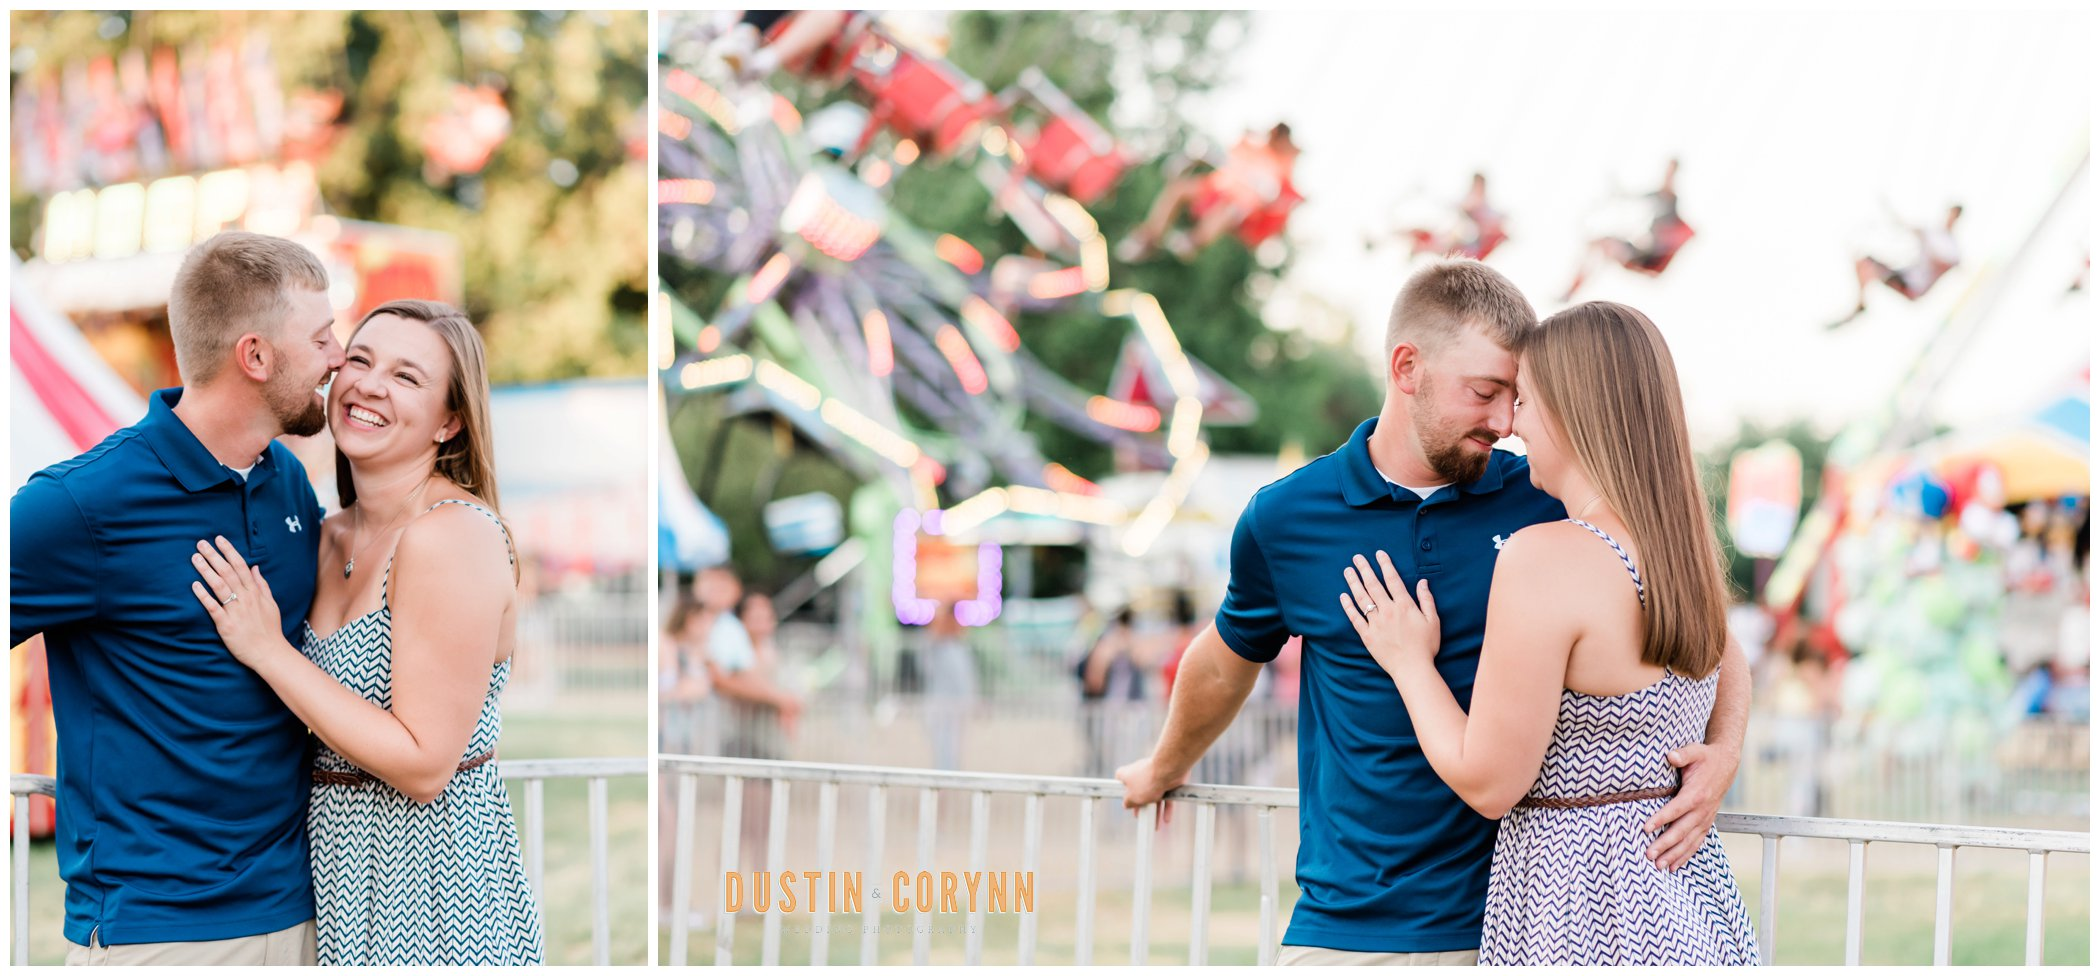 Sweet Moment at the Three Rivers Festival